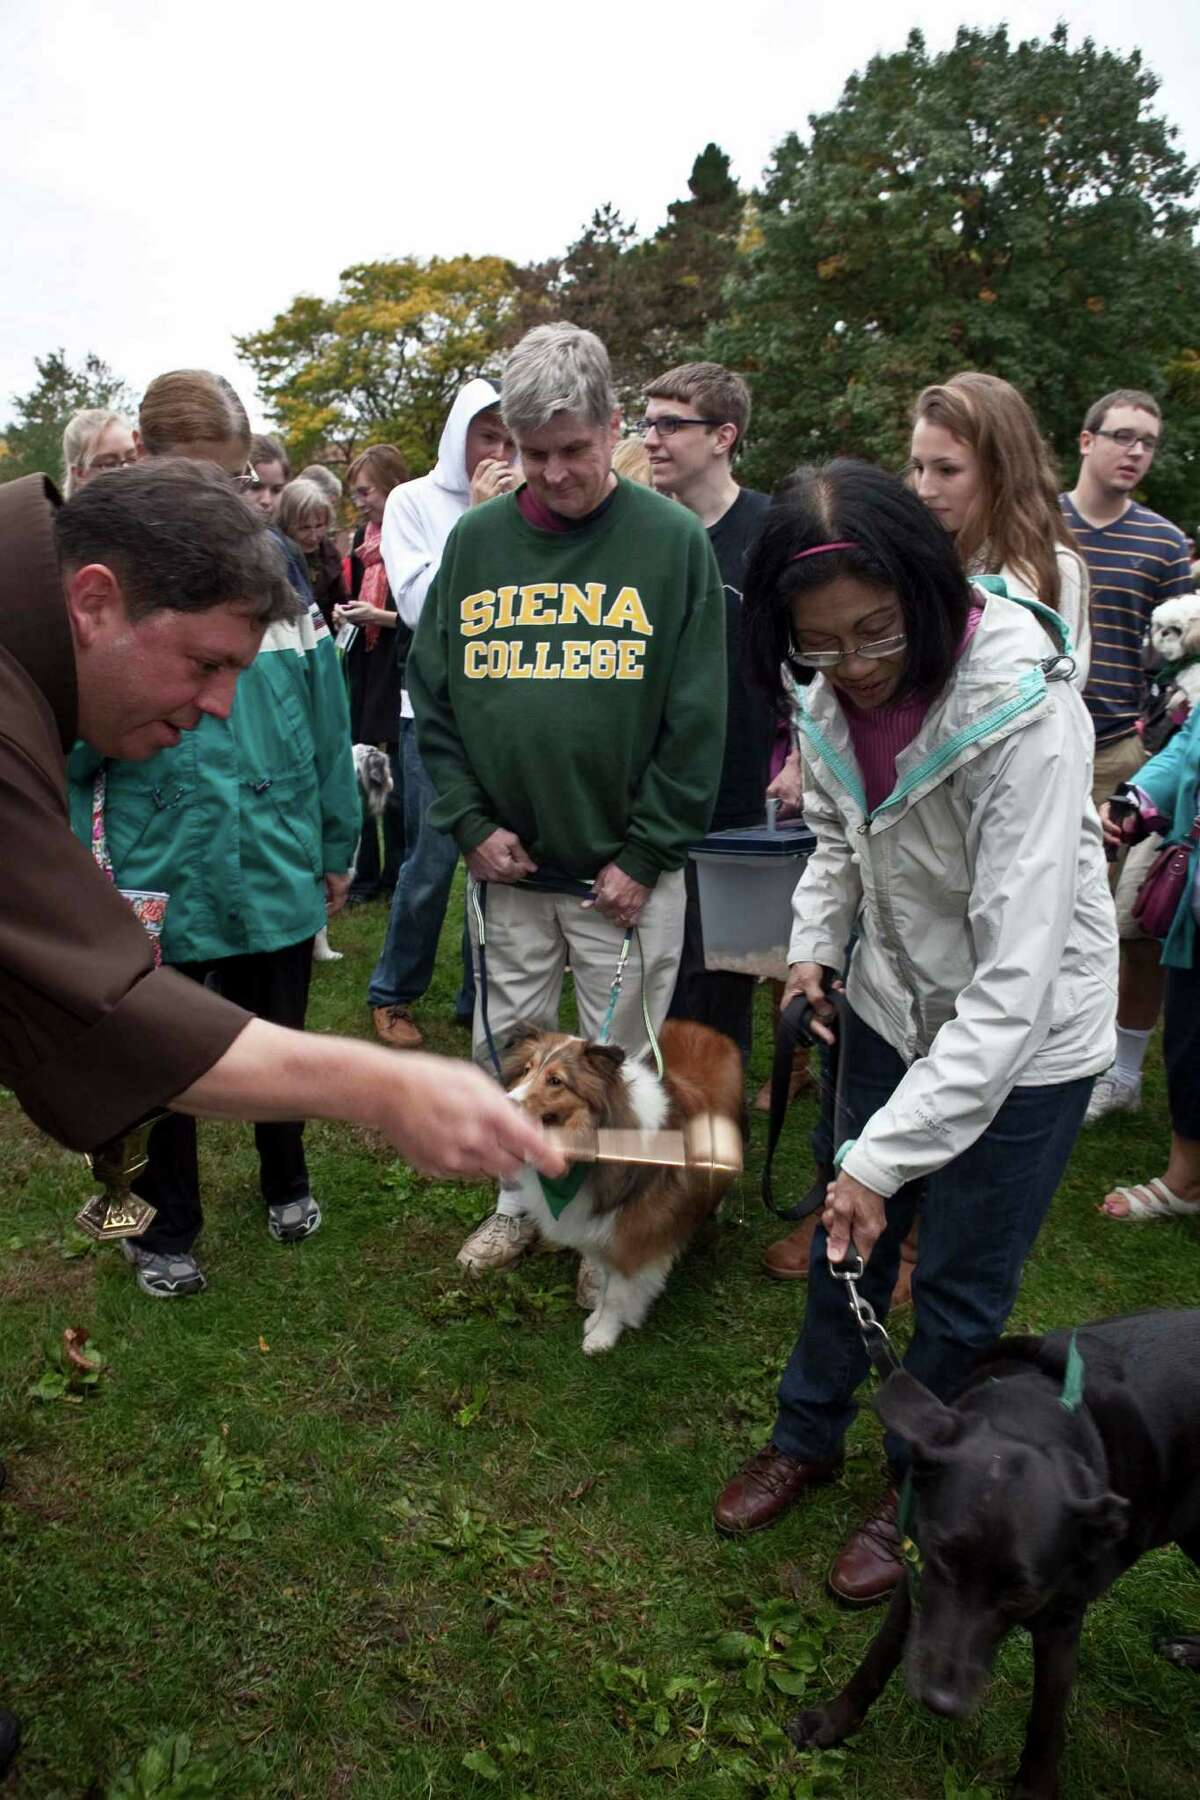 Were you Seen at the annual Blessing of the Animals in celebration of St. Francis Week at Siena College on Saturday, Oct. 6, 2012?